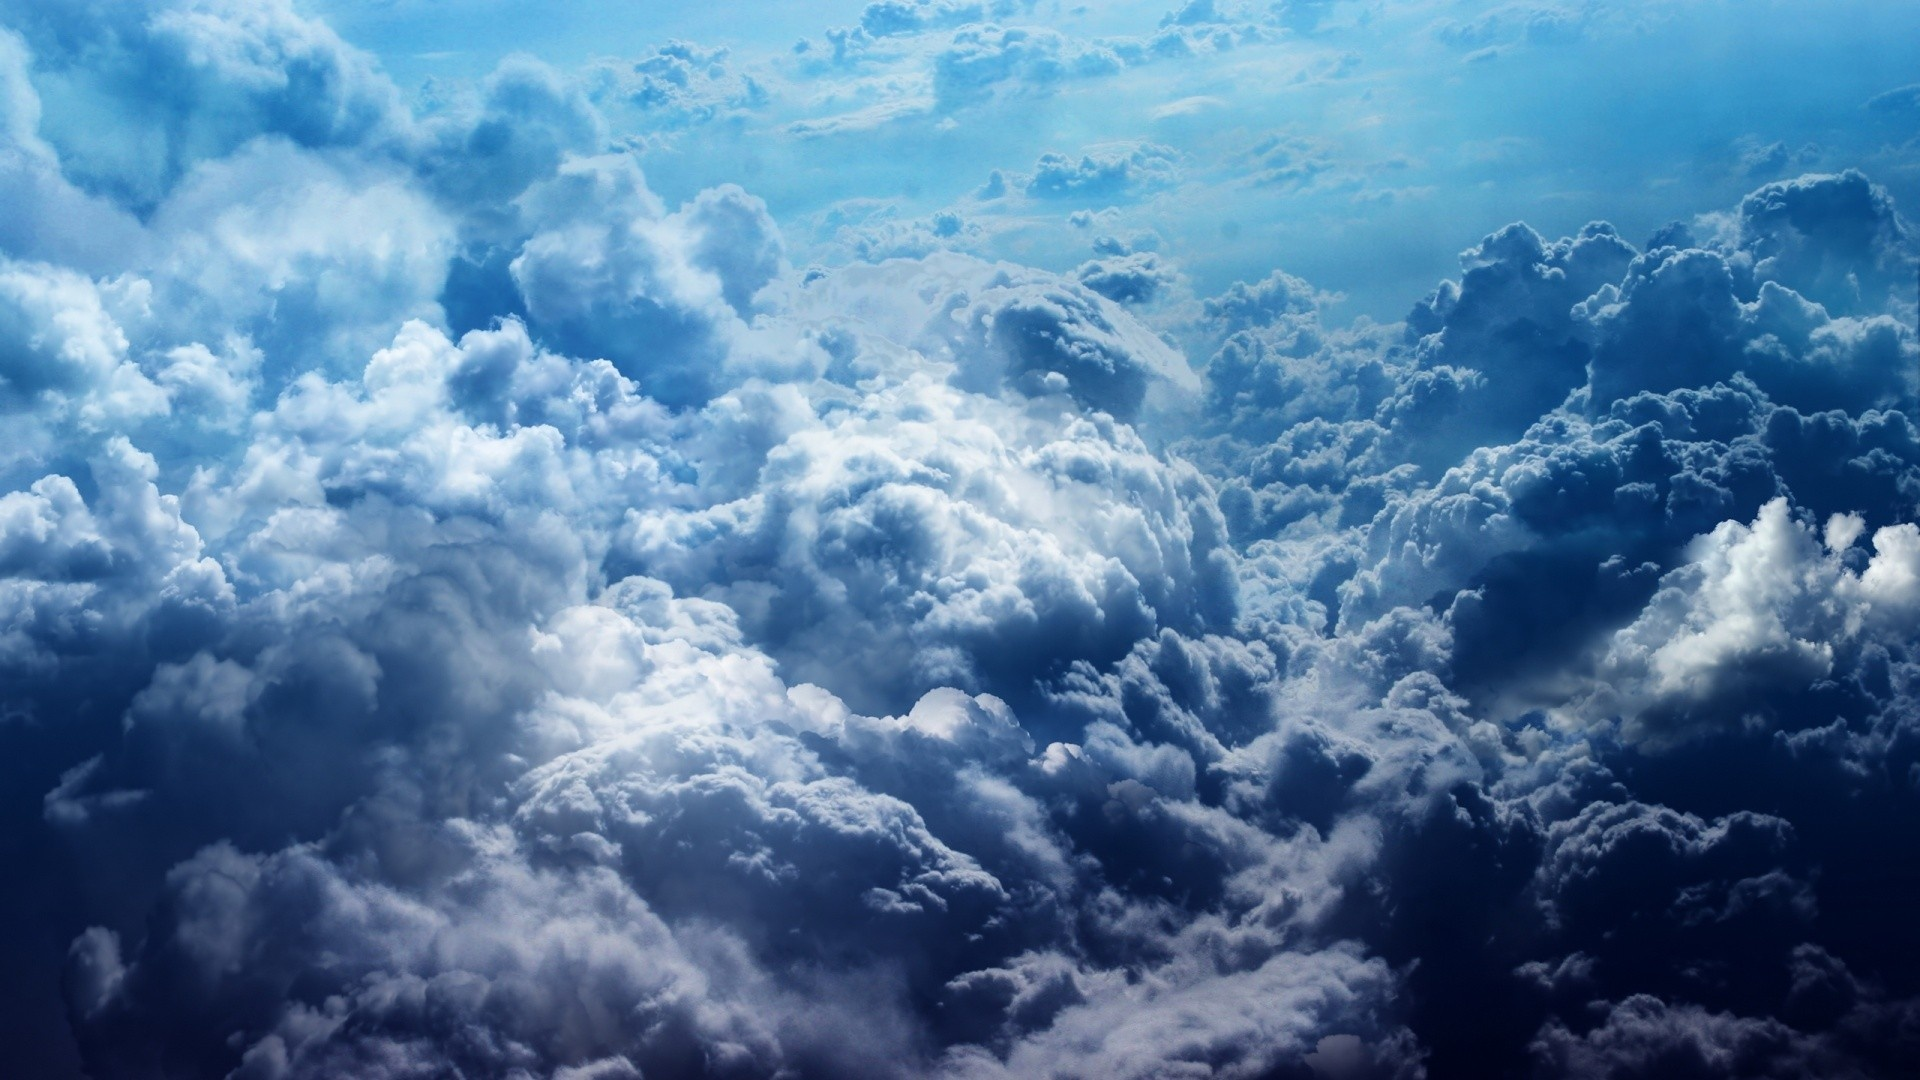 clouds wallpaper download